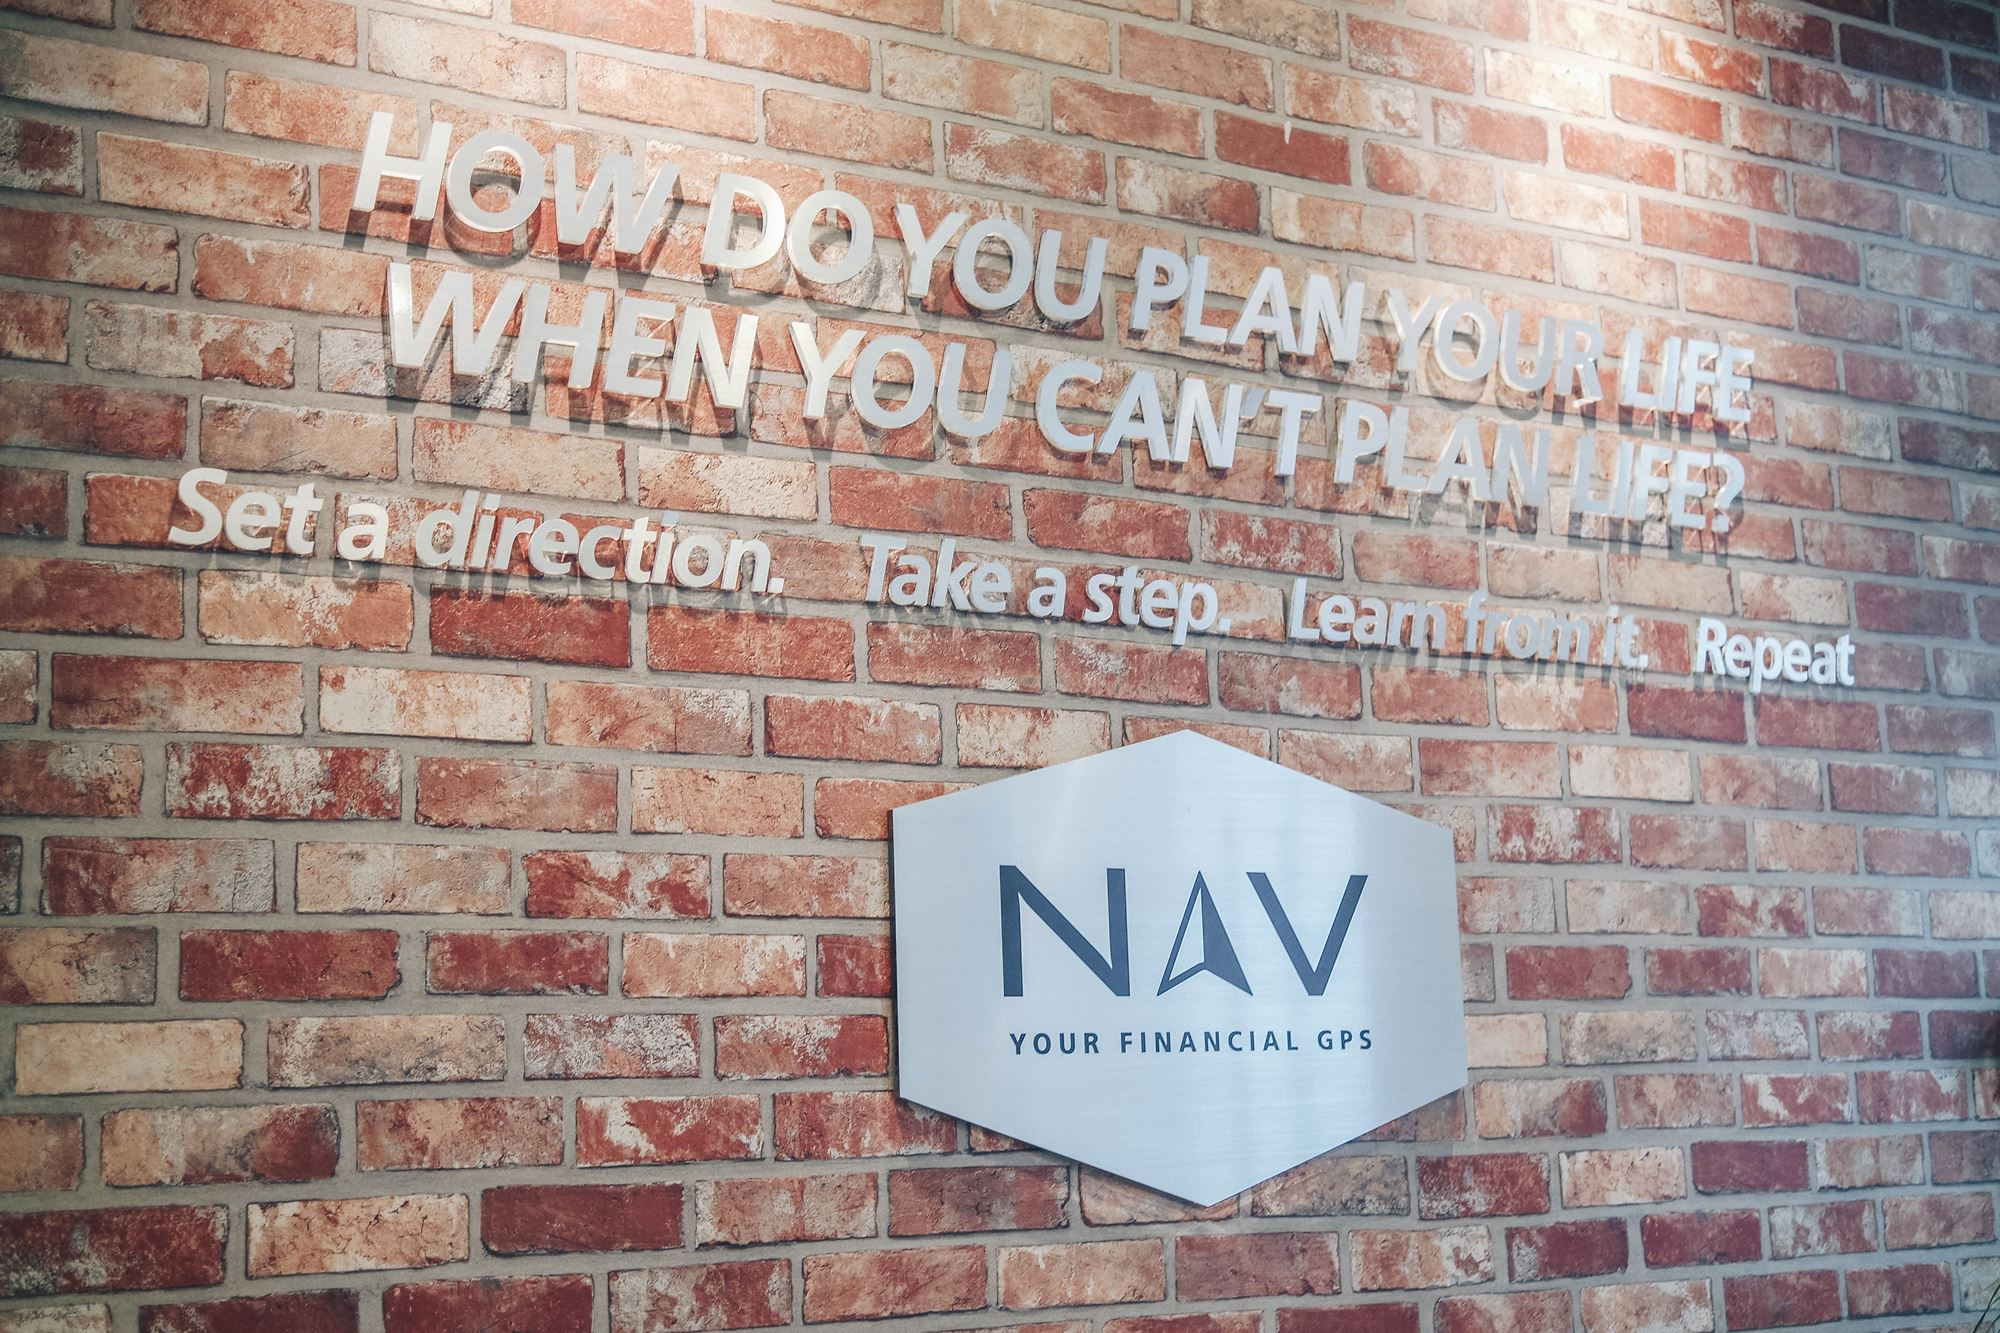 Nav - Your financial GPS